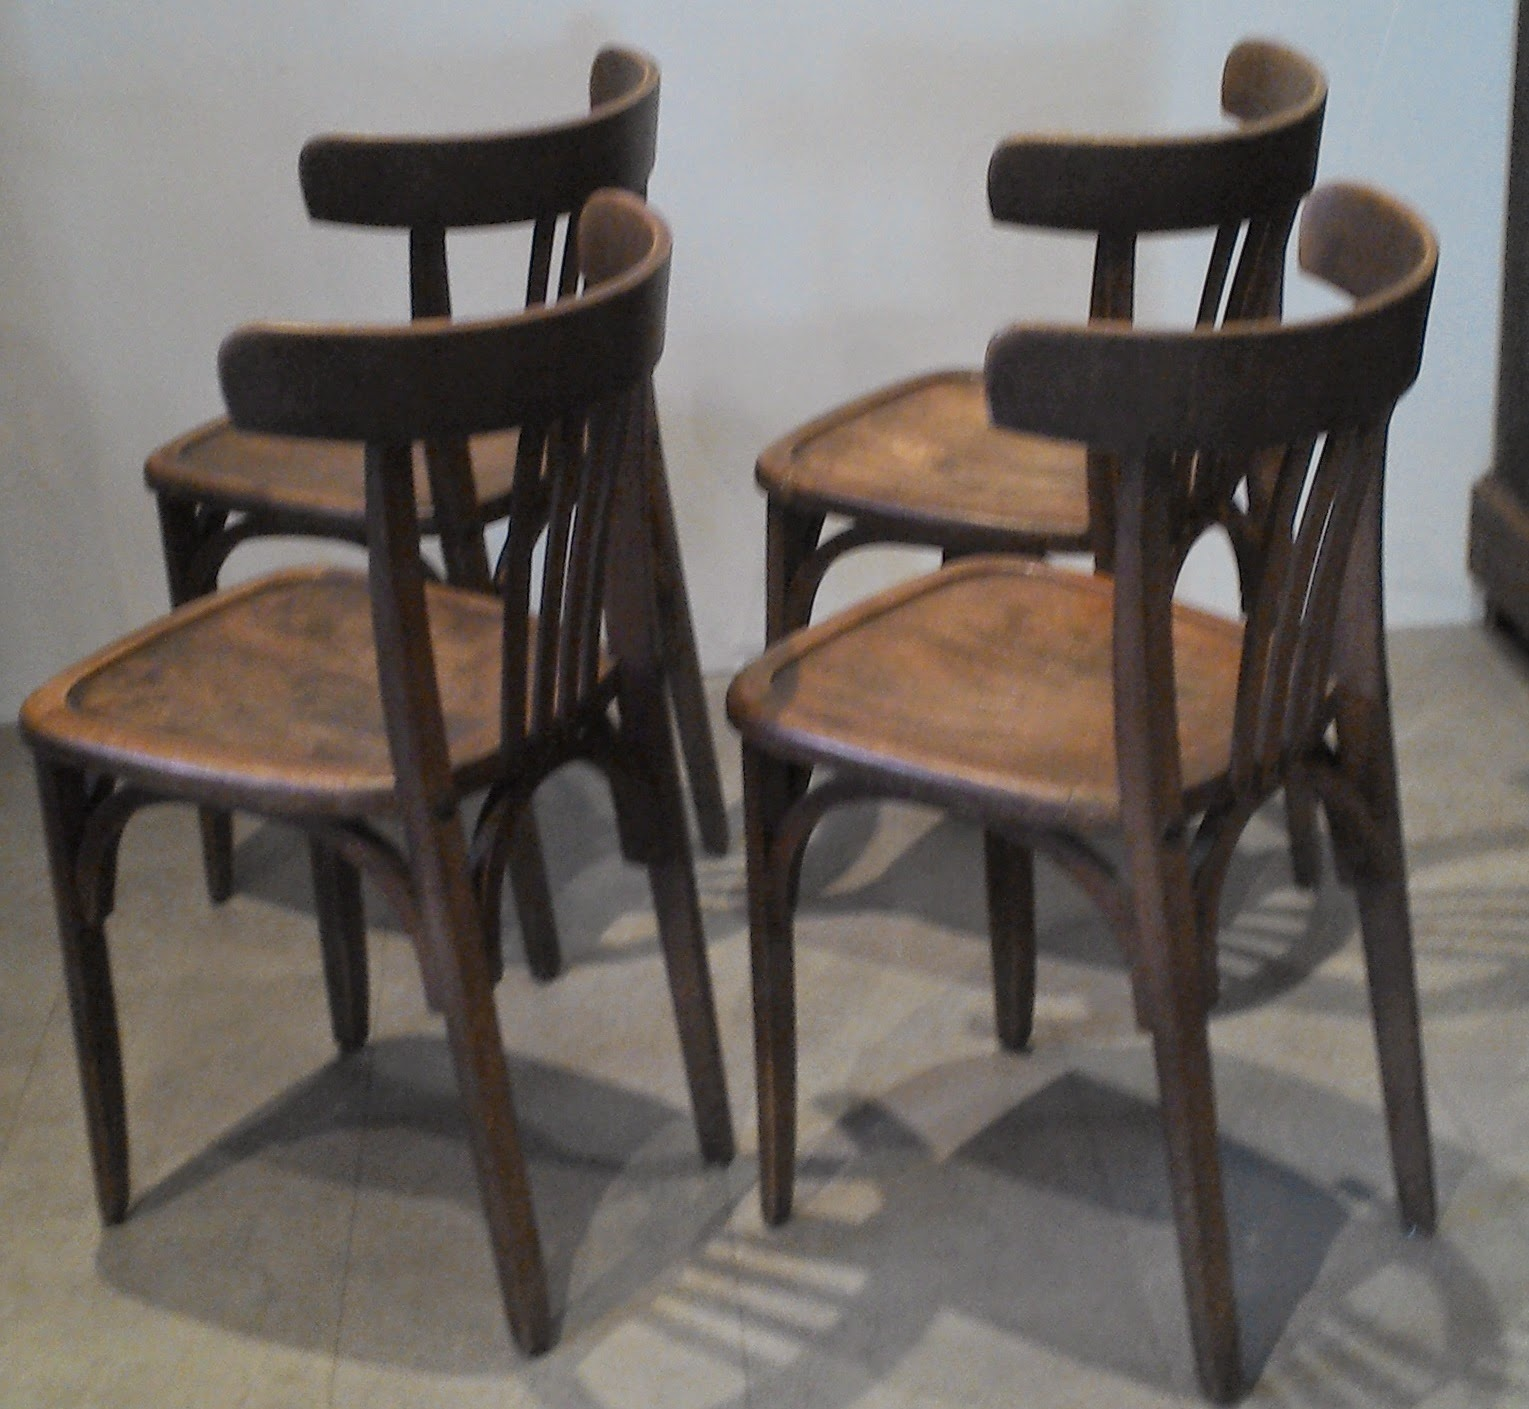 4 anciennes chaises bistrot bar style thonnet ou baumann loft atelier. Black Bedroom Furniture Sets. Home Design Ideas